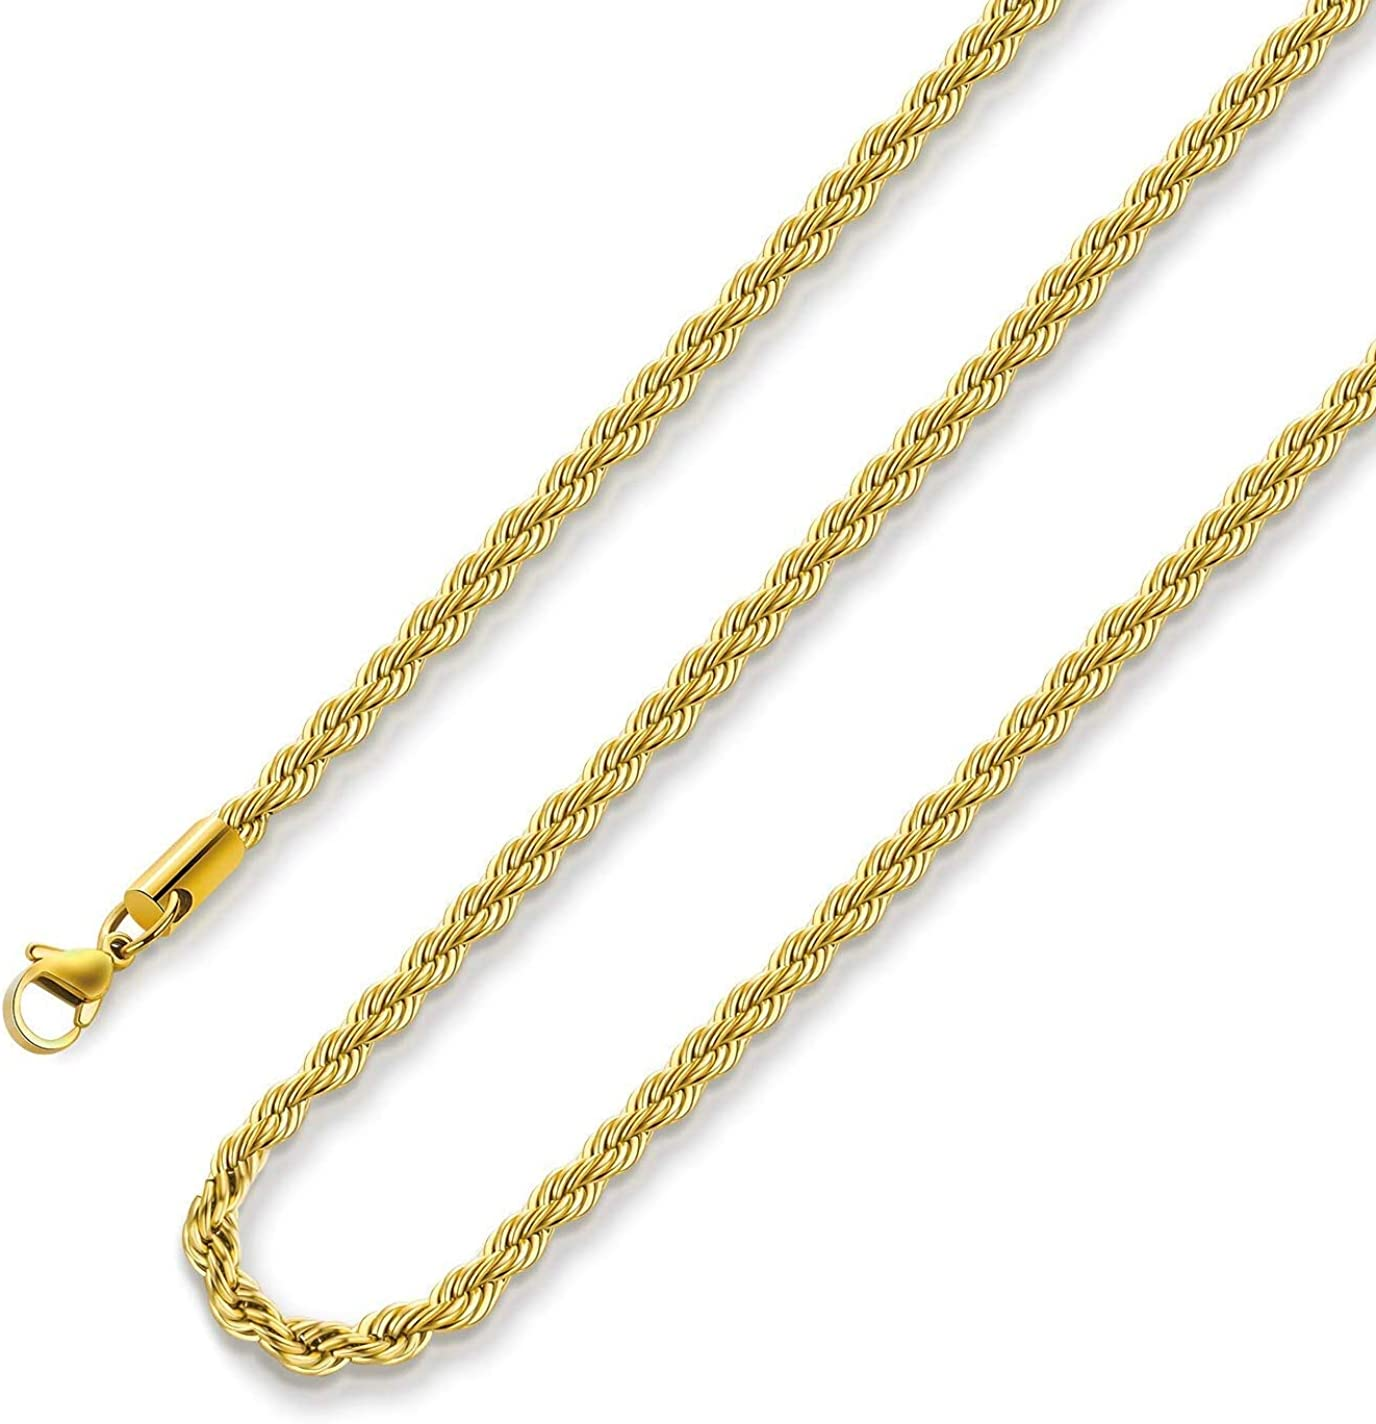 18k Real Gold Plated Rope Chain Necklace 2.5mm 8mm Stainless Steel Men Chain Necklace Women Chains 16 Inches 36 Inches